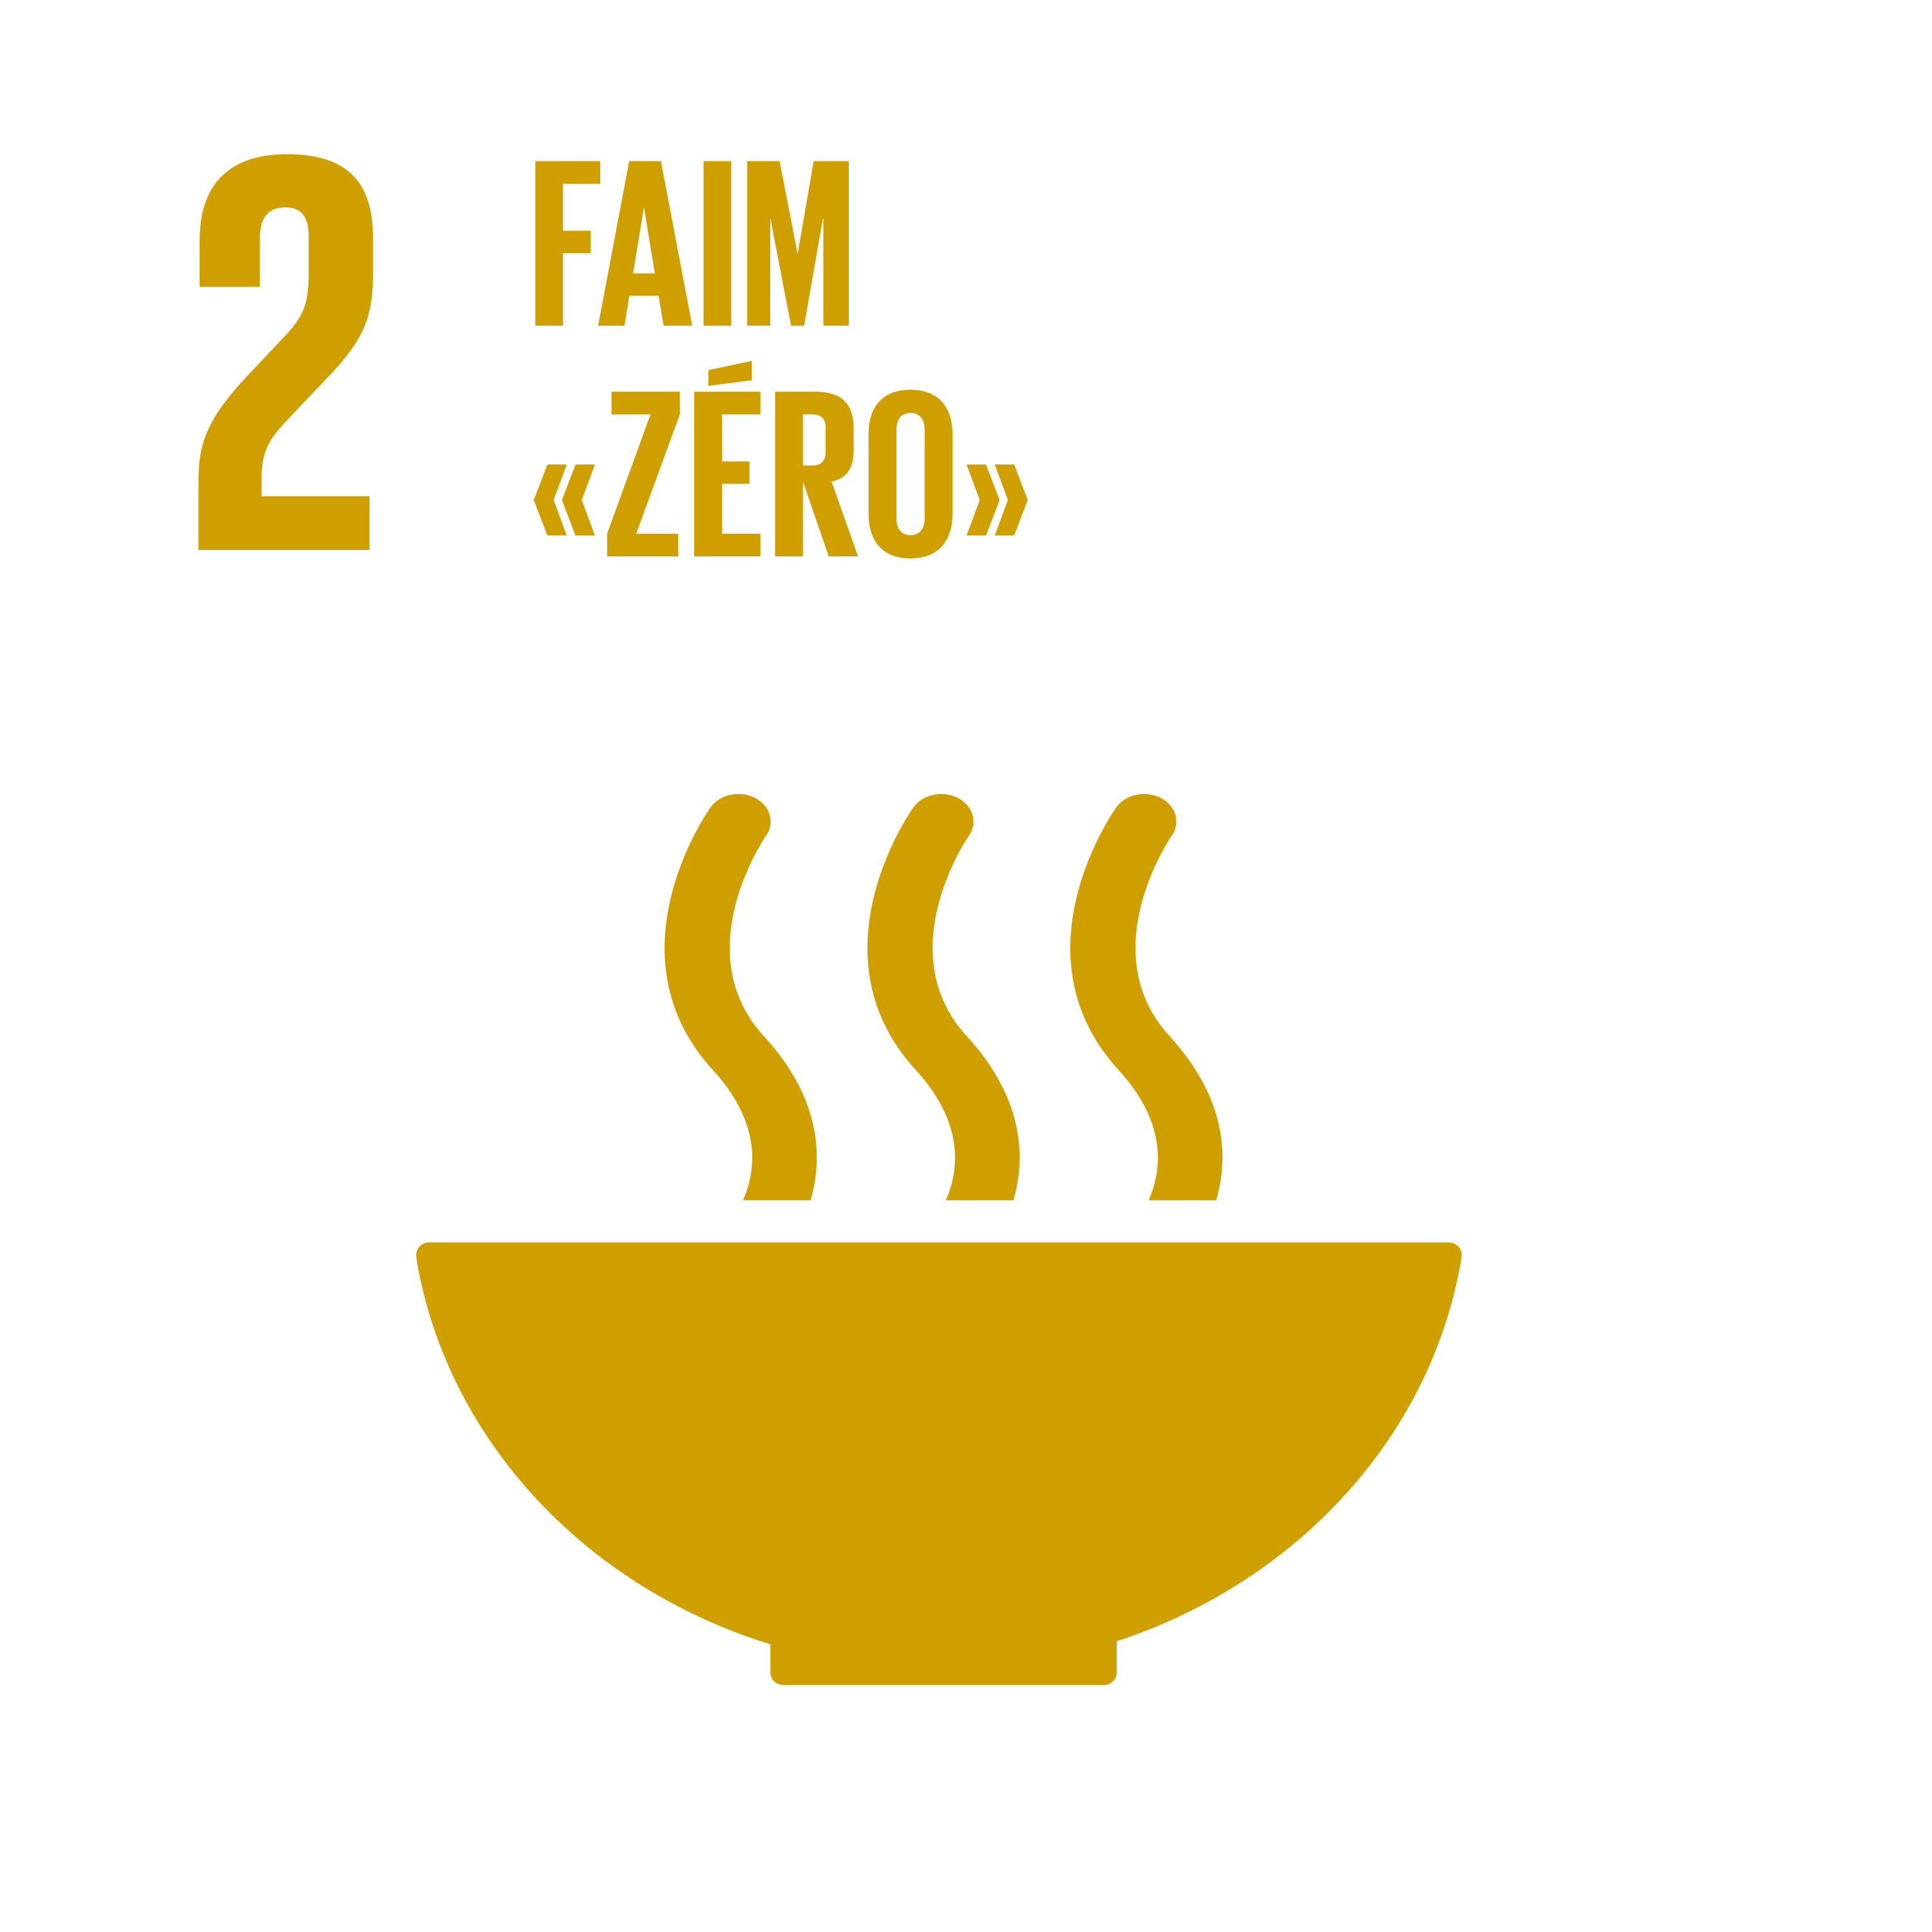 F_INVERTED SDG goals_icons-individual-cmyk-01